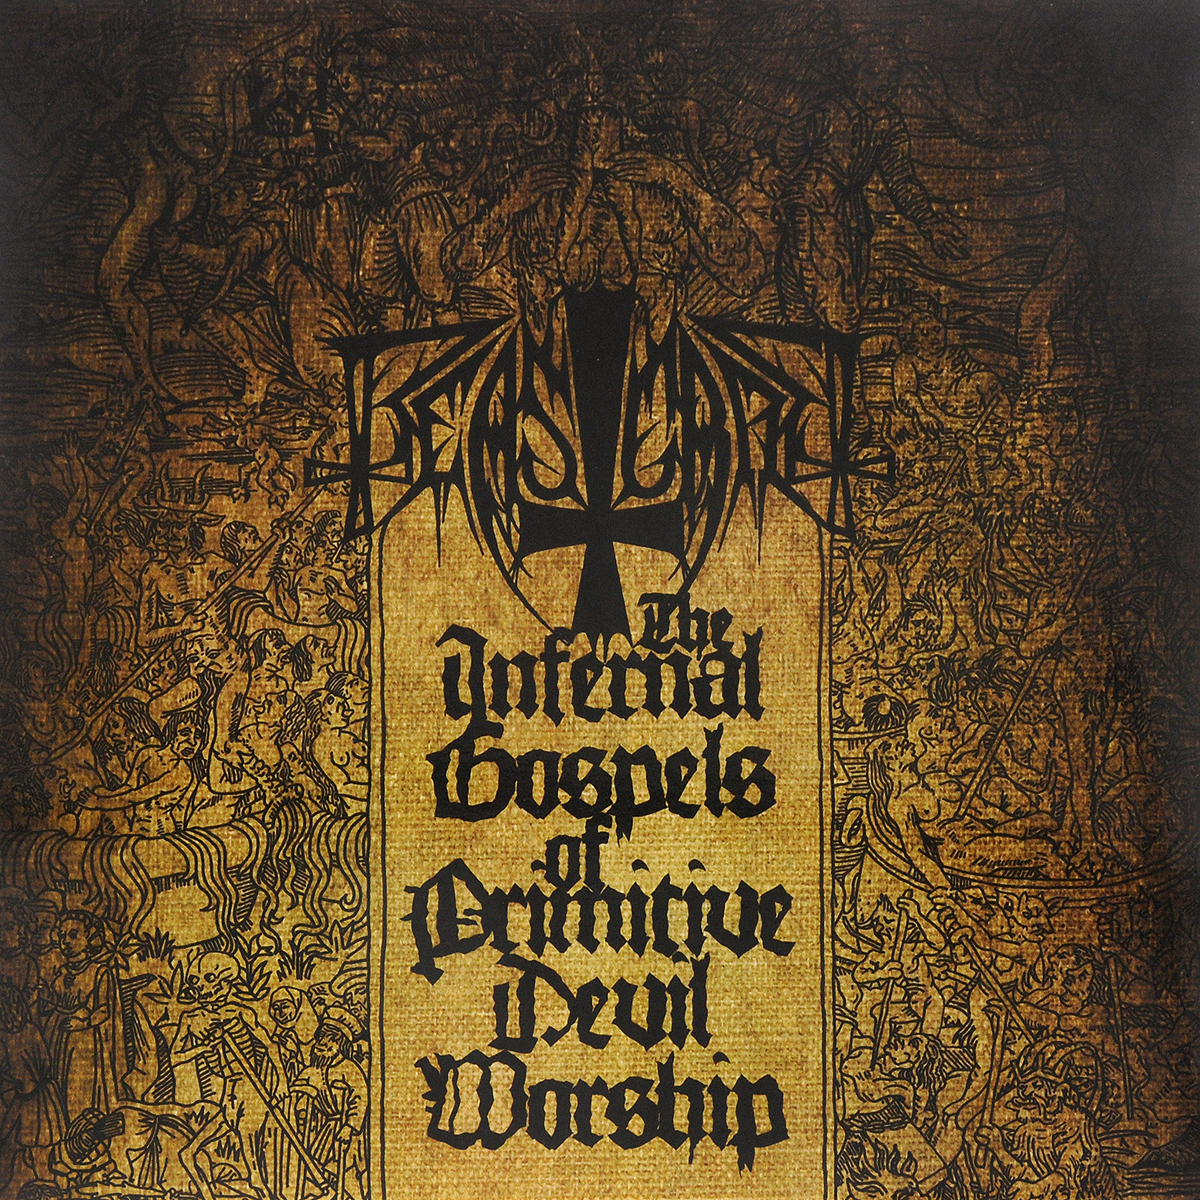 Beastcraft Beastcraft. The Infernal Gospels Of Primitive Devil Worship (LP) активный сабвуфер monitor audio platinum plw215 ii ebony